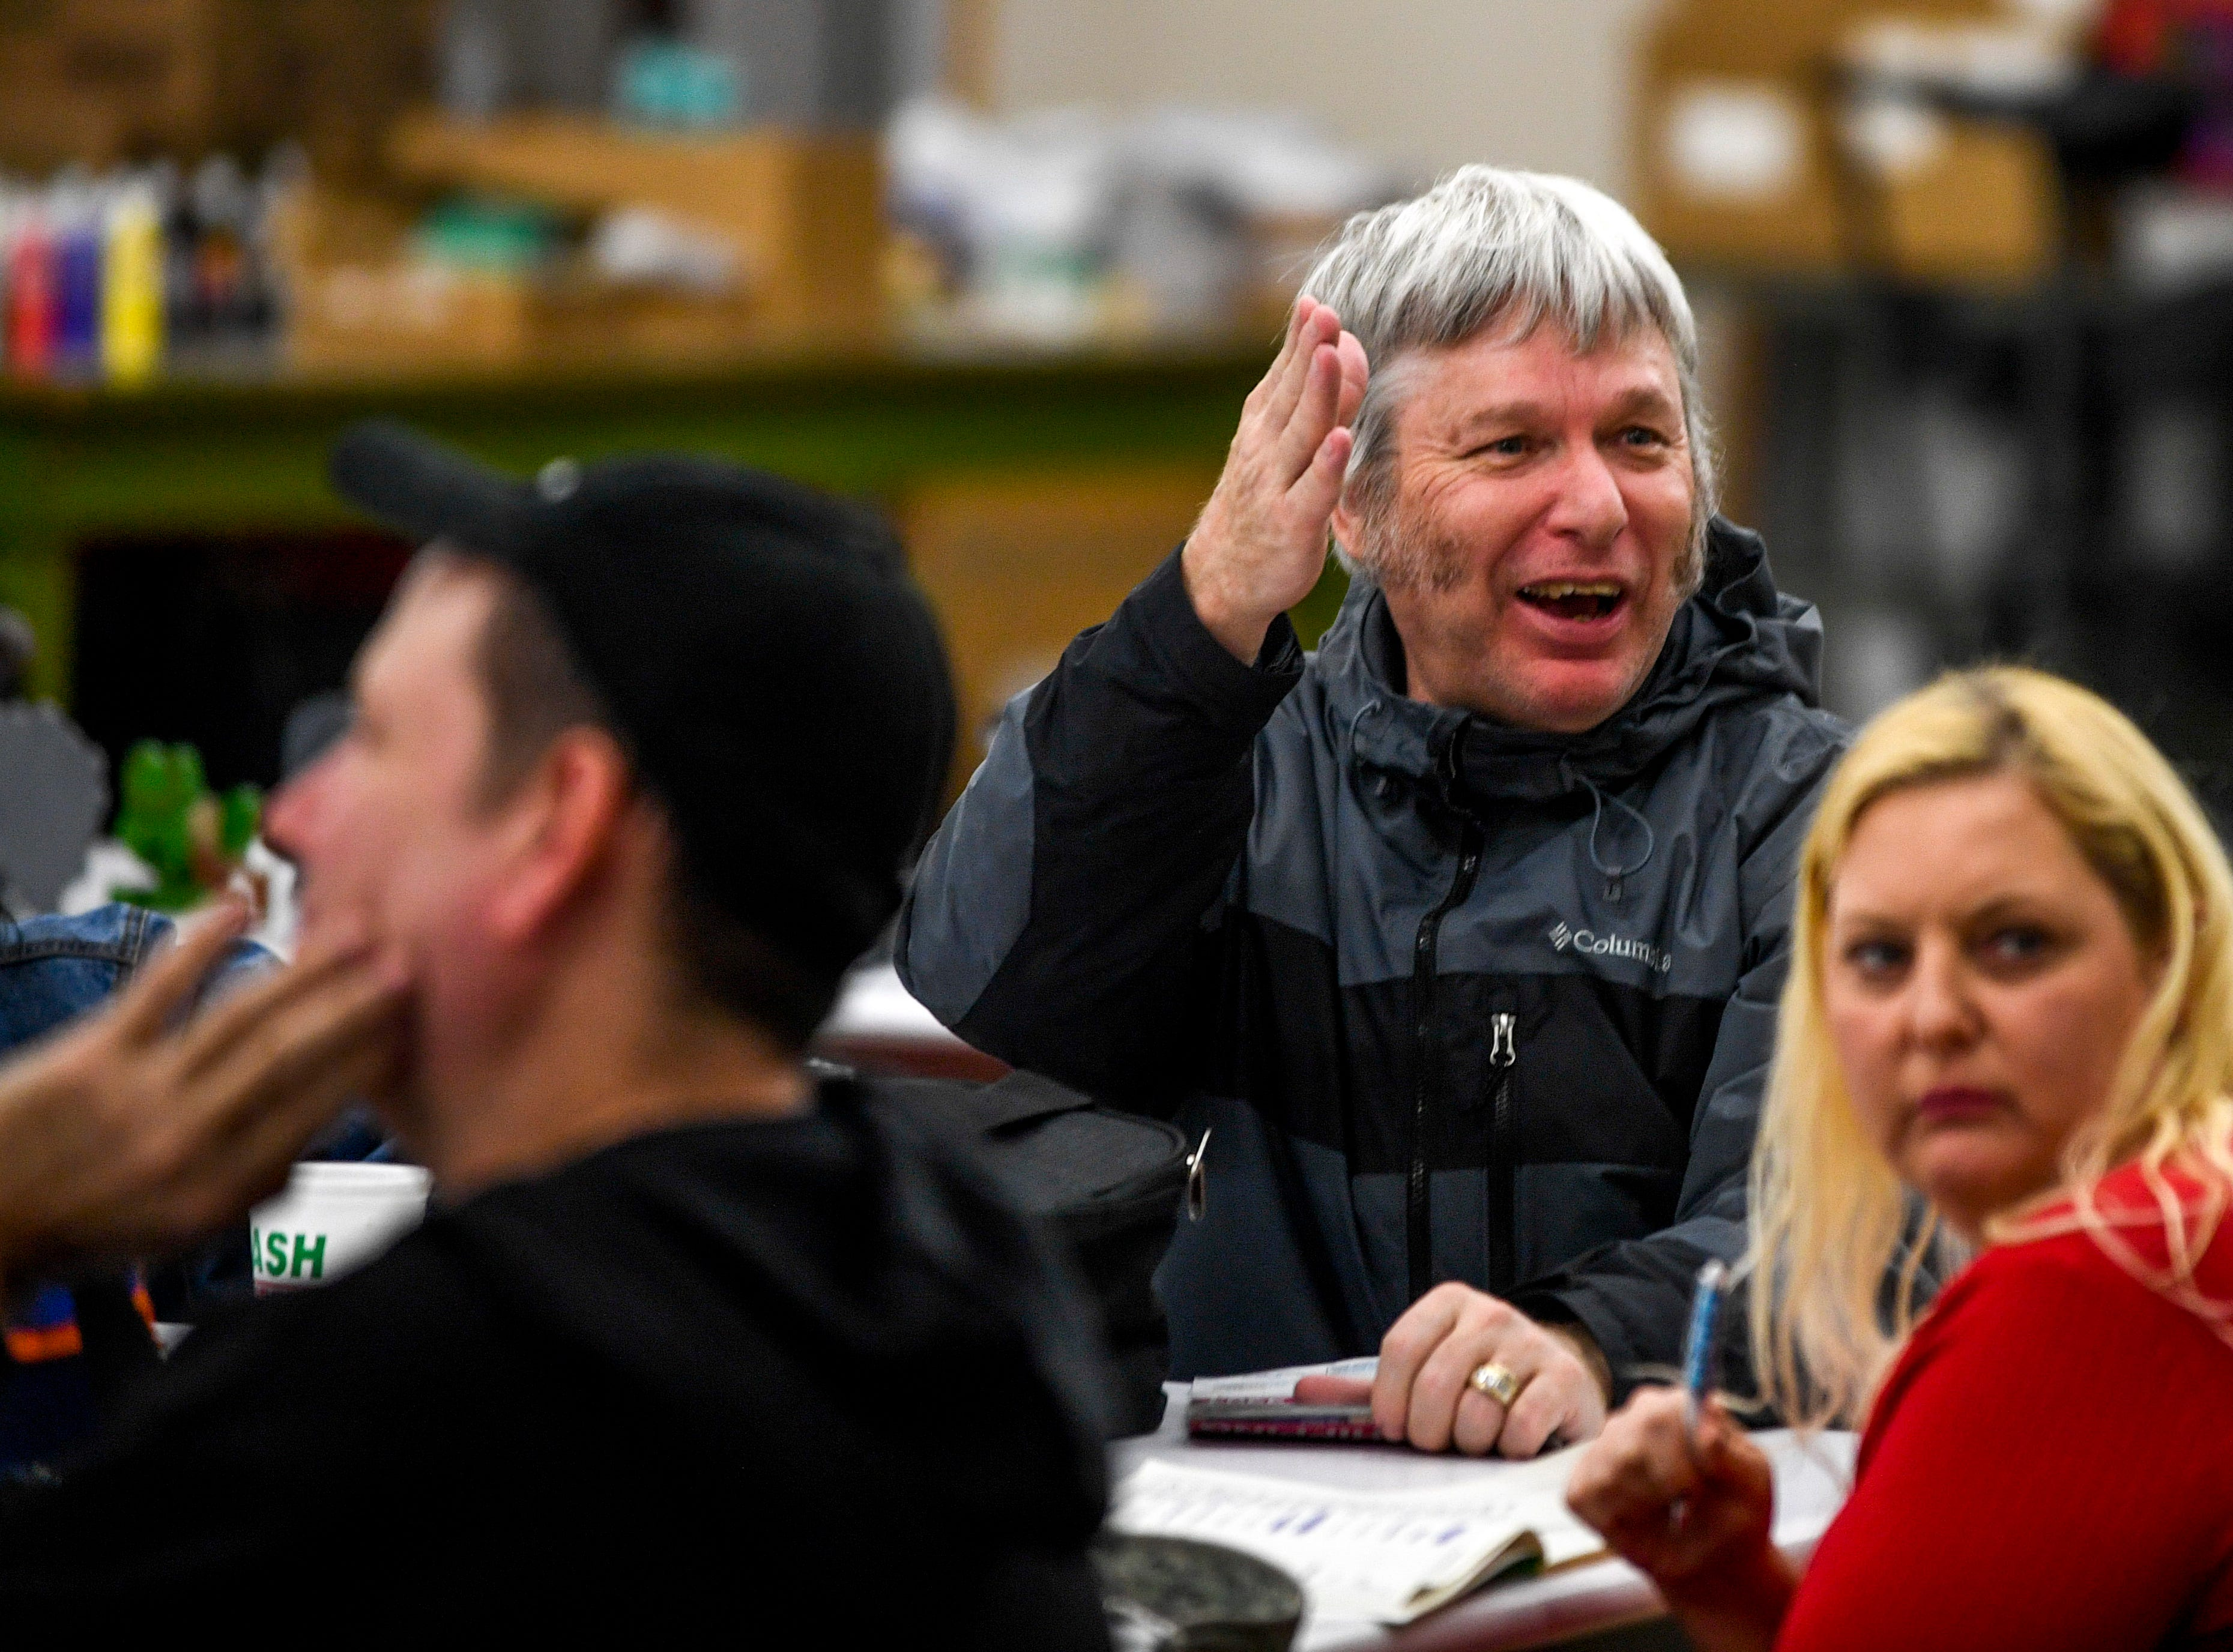 Tommy Walker, the class Elvis impersonator, raises his hand to argue a point during class at McNairy Developmental Services in Selmer, Tenn., on Thursday, Feb. 21, 2019.